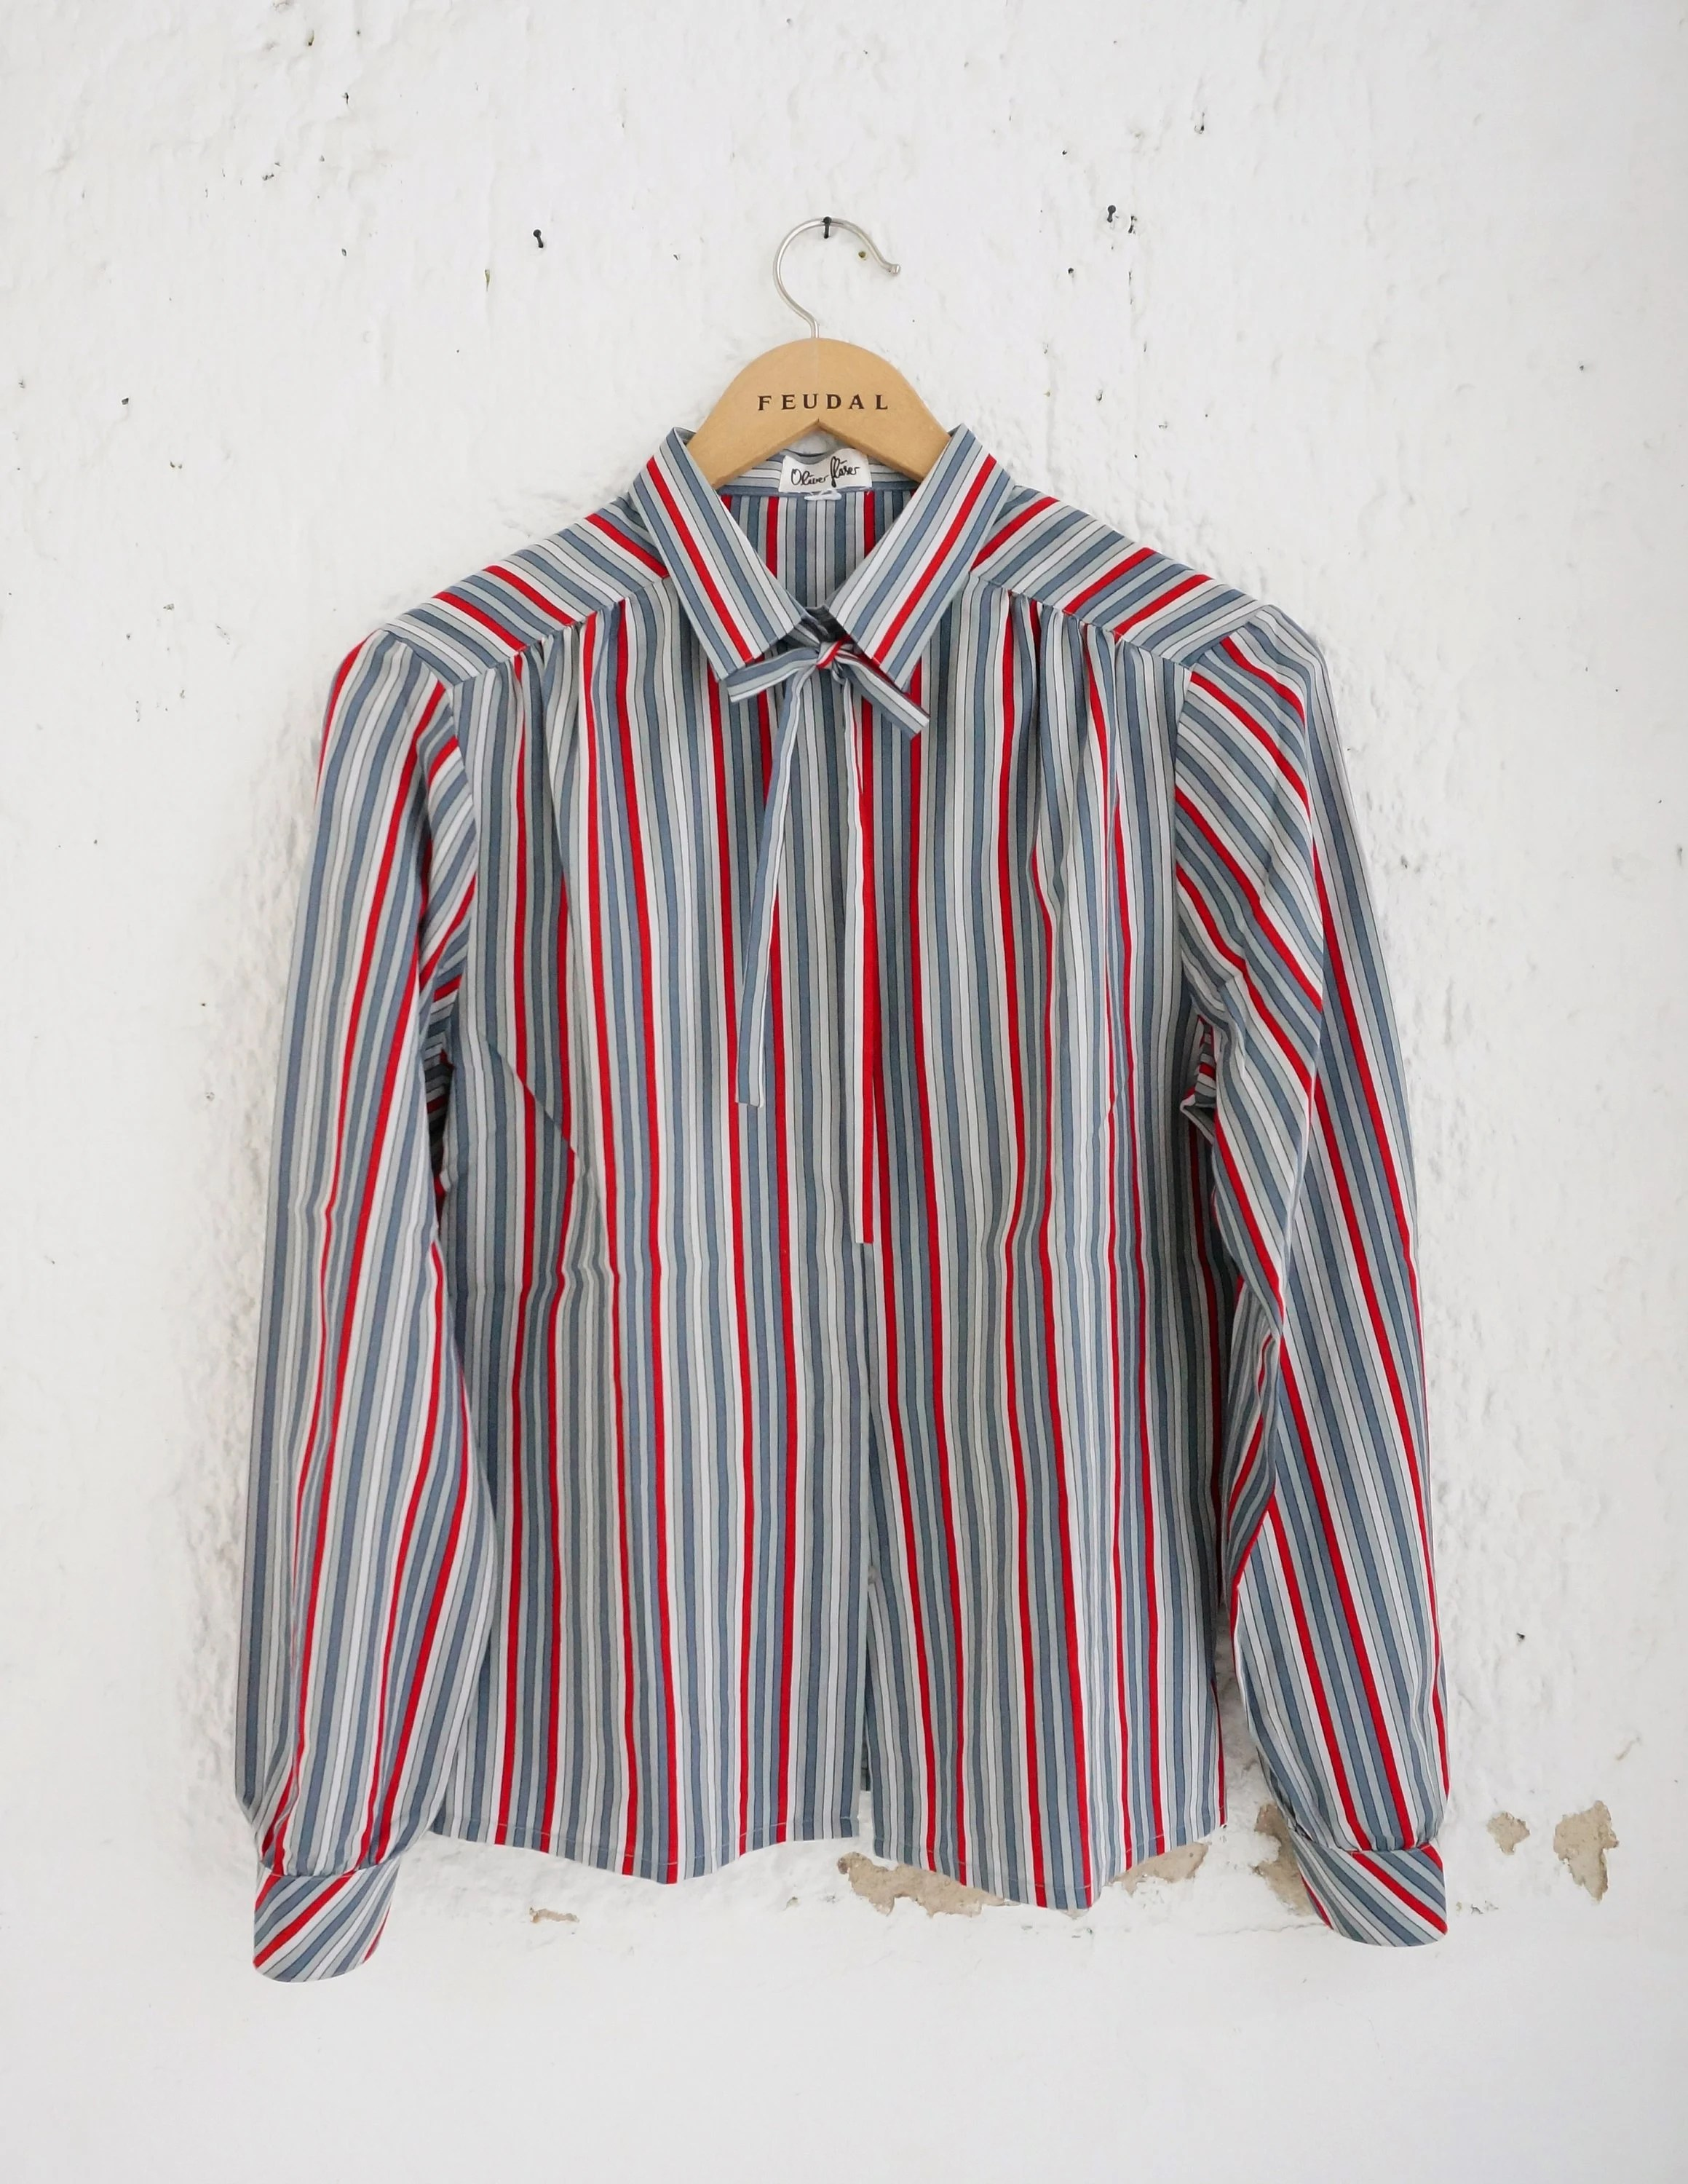 Vintage Gläser Vintage Oliver Glaser Red And Grey Striped Blouse With Neck Tie M